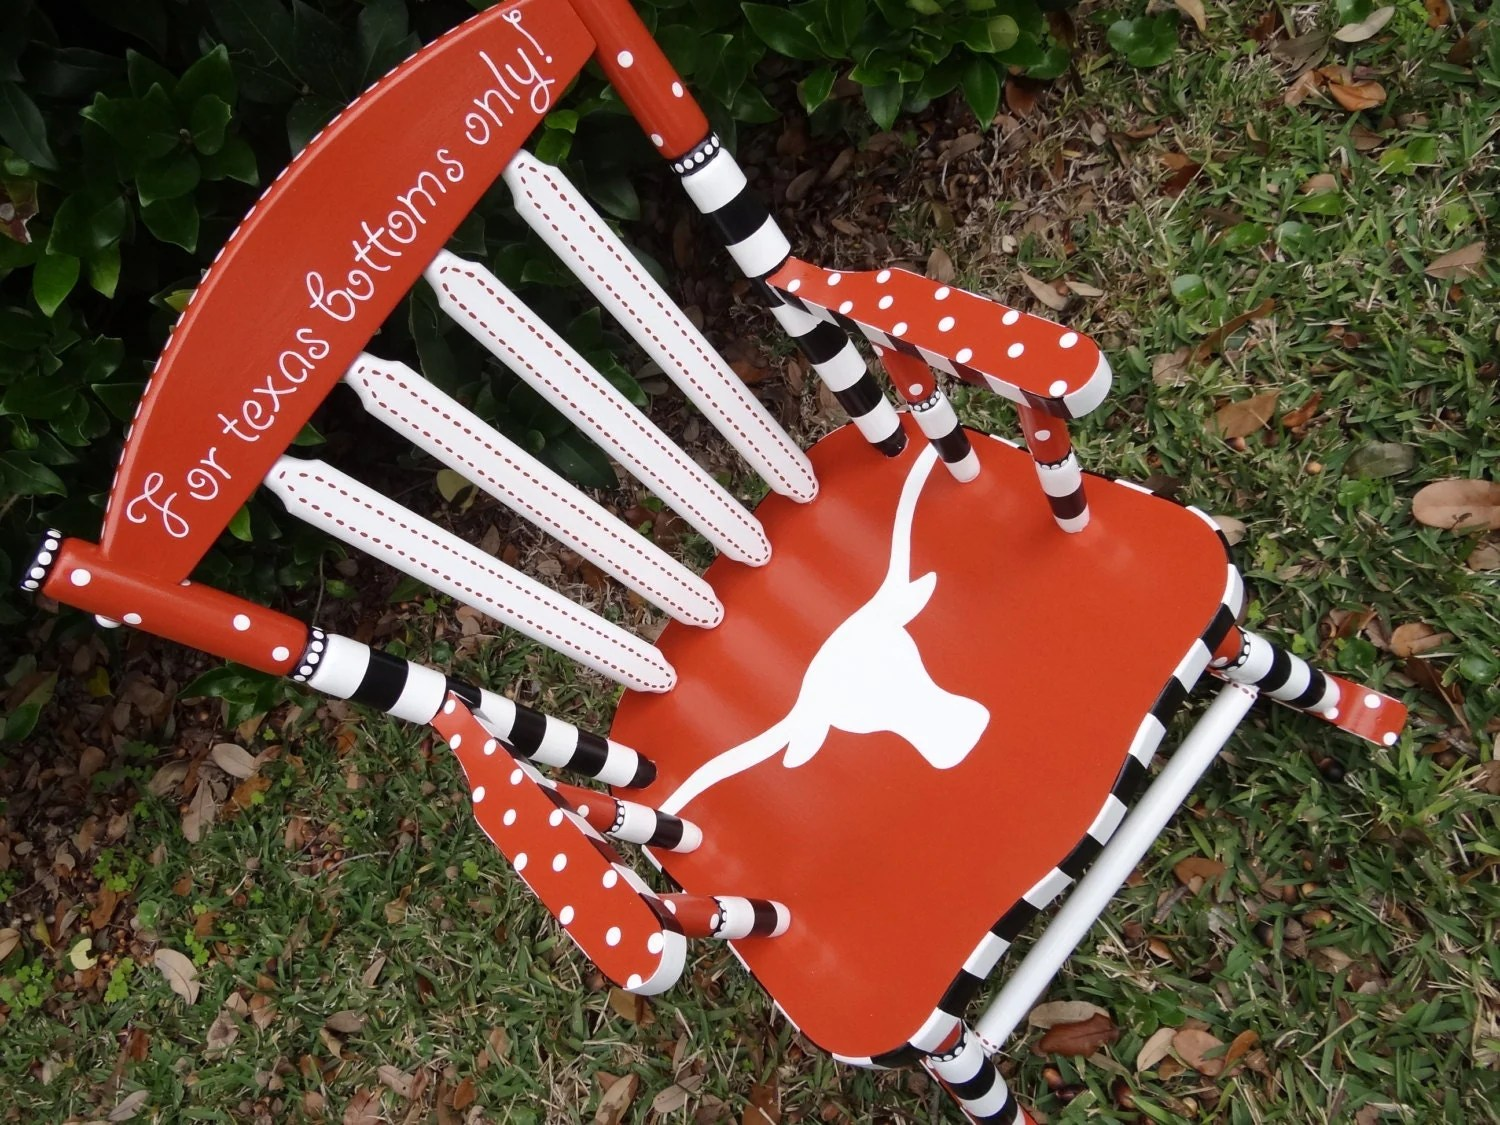 custom rocking chairs texas outdoor wicker chair and ottoman set personalized kids 39 longhorn university by